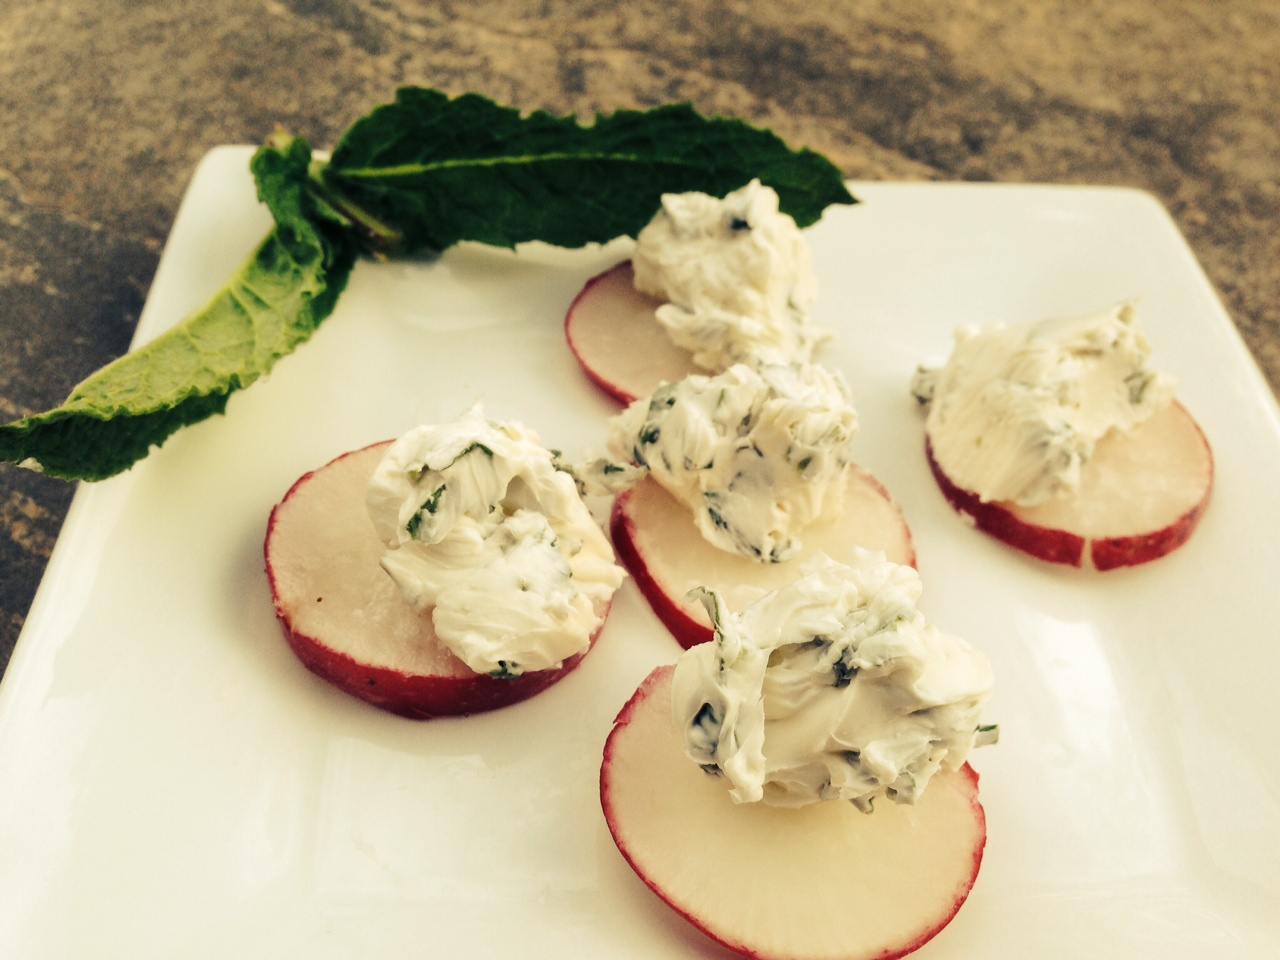 Enjoy the flavors of spring with garden fresh radishes and herbs in a swirl of cream cheese.